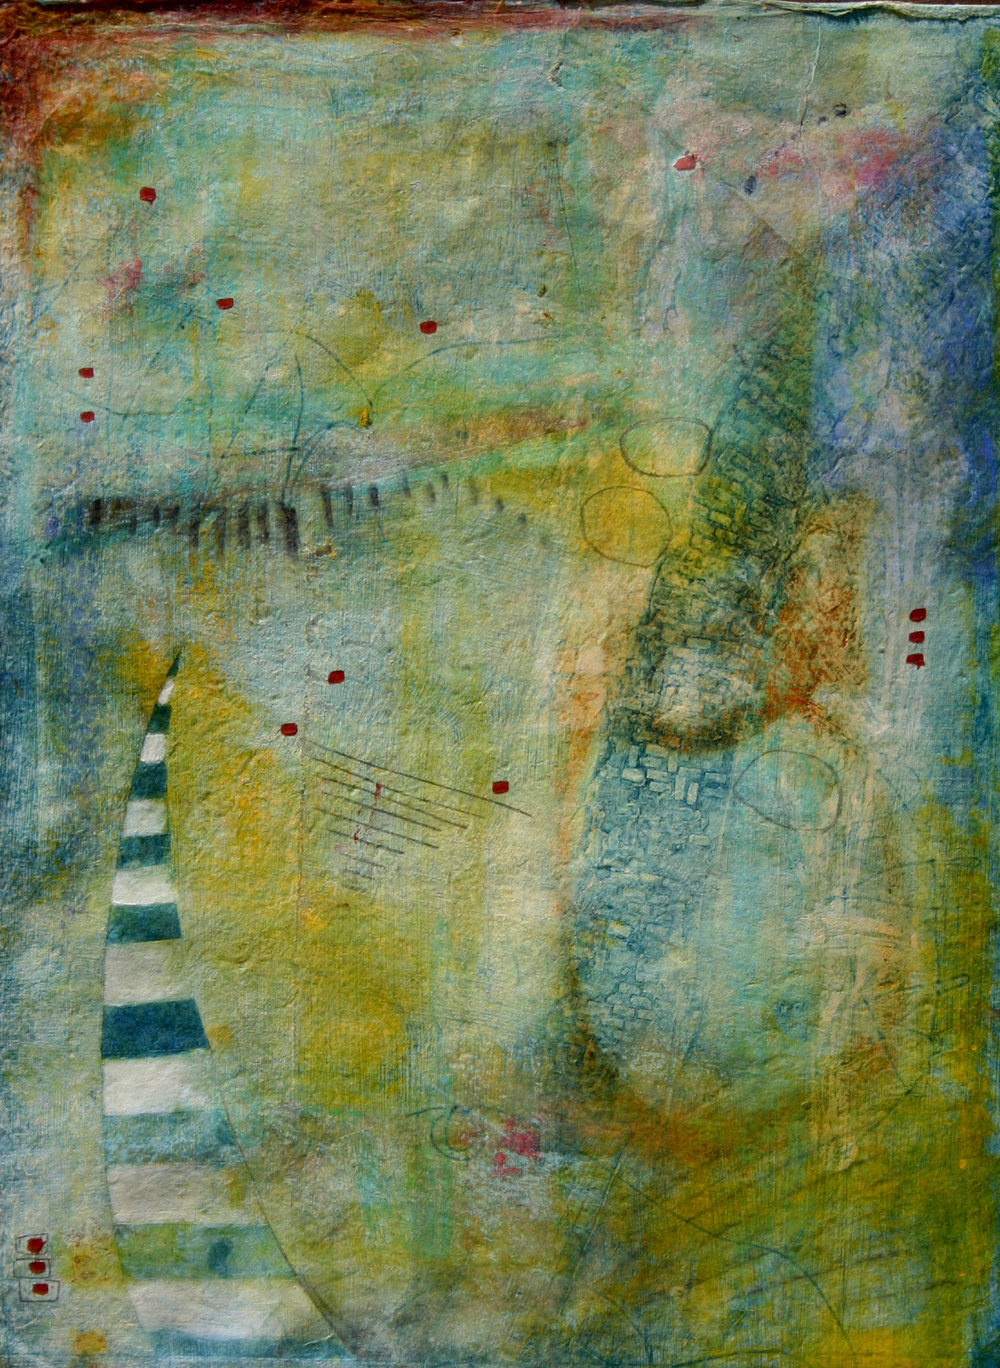 """El Roble Del Peregrino"", mixed media, 25"" x 18"", $475"